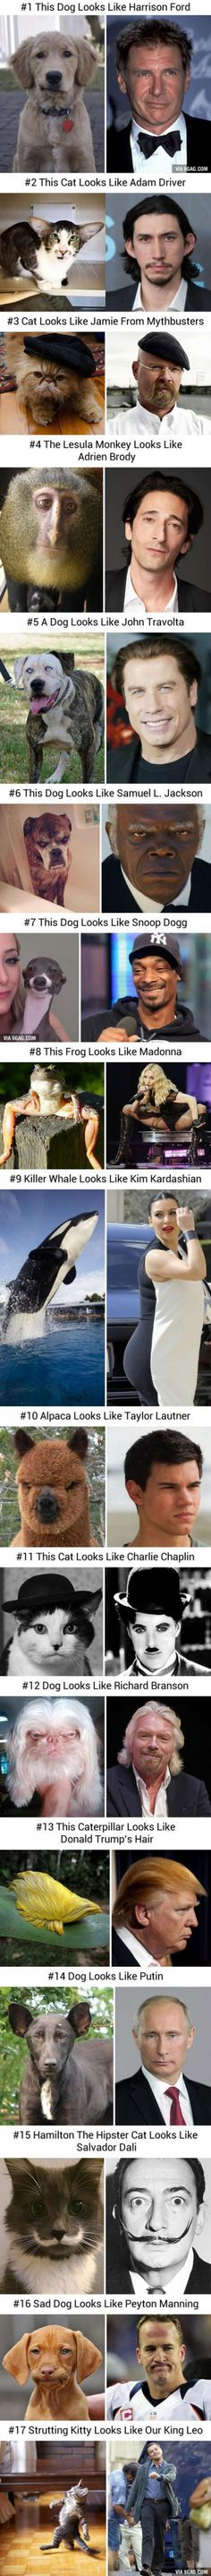 Celebrities With Animal Lookalikes. Keep Scrolling - They Get Better!